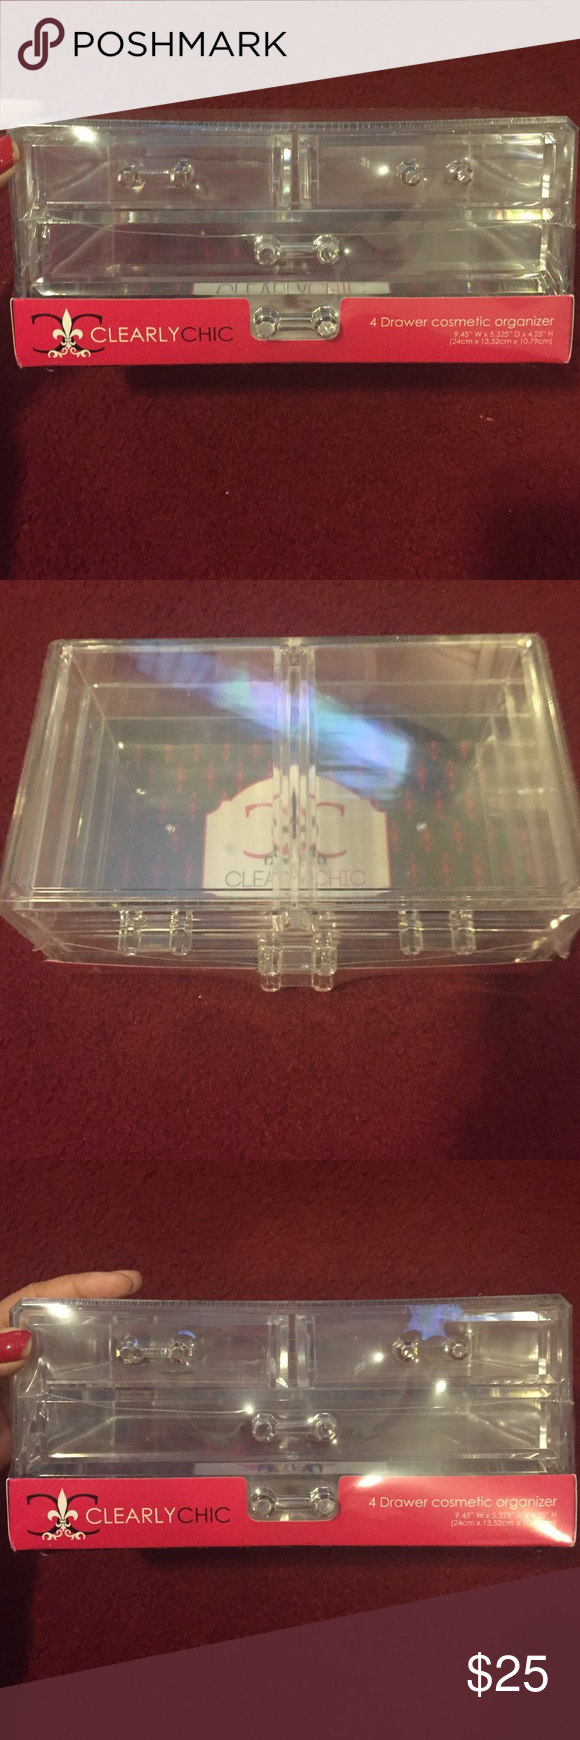 4 drawer cosmetic organizer 4 drawer cosmetic organizer- unopened new. Fits make up and hair supplies. Accessories